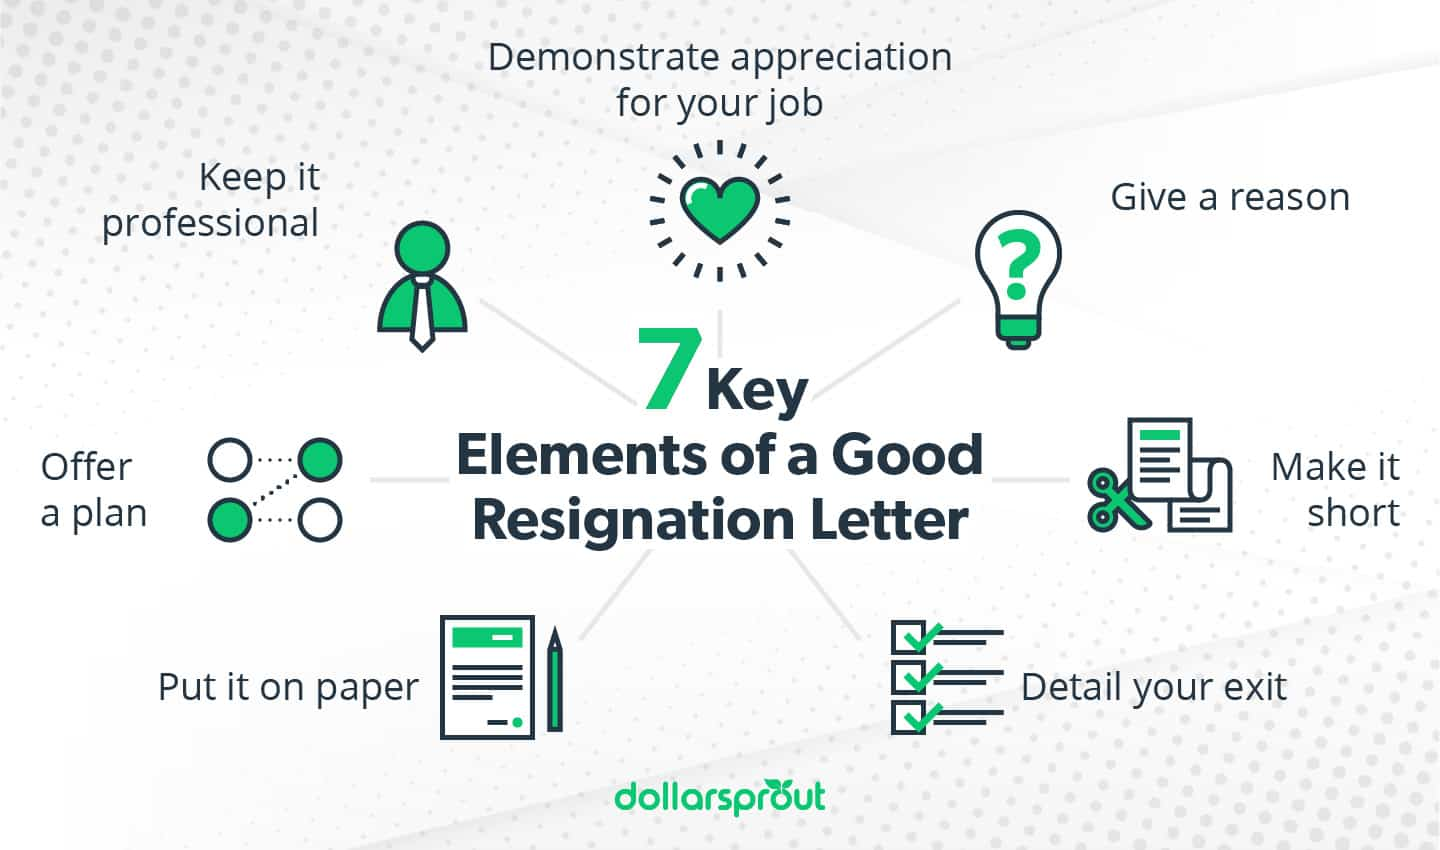 key elements of a good resignation letter infographic